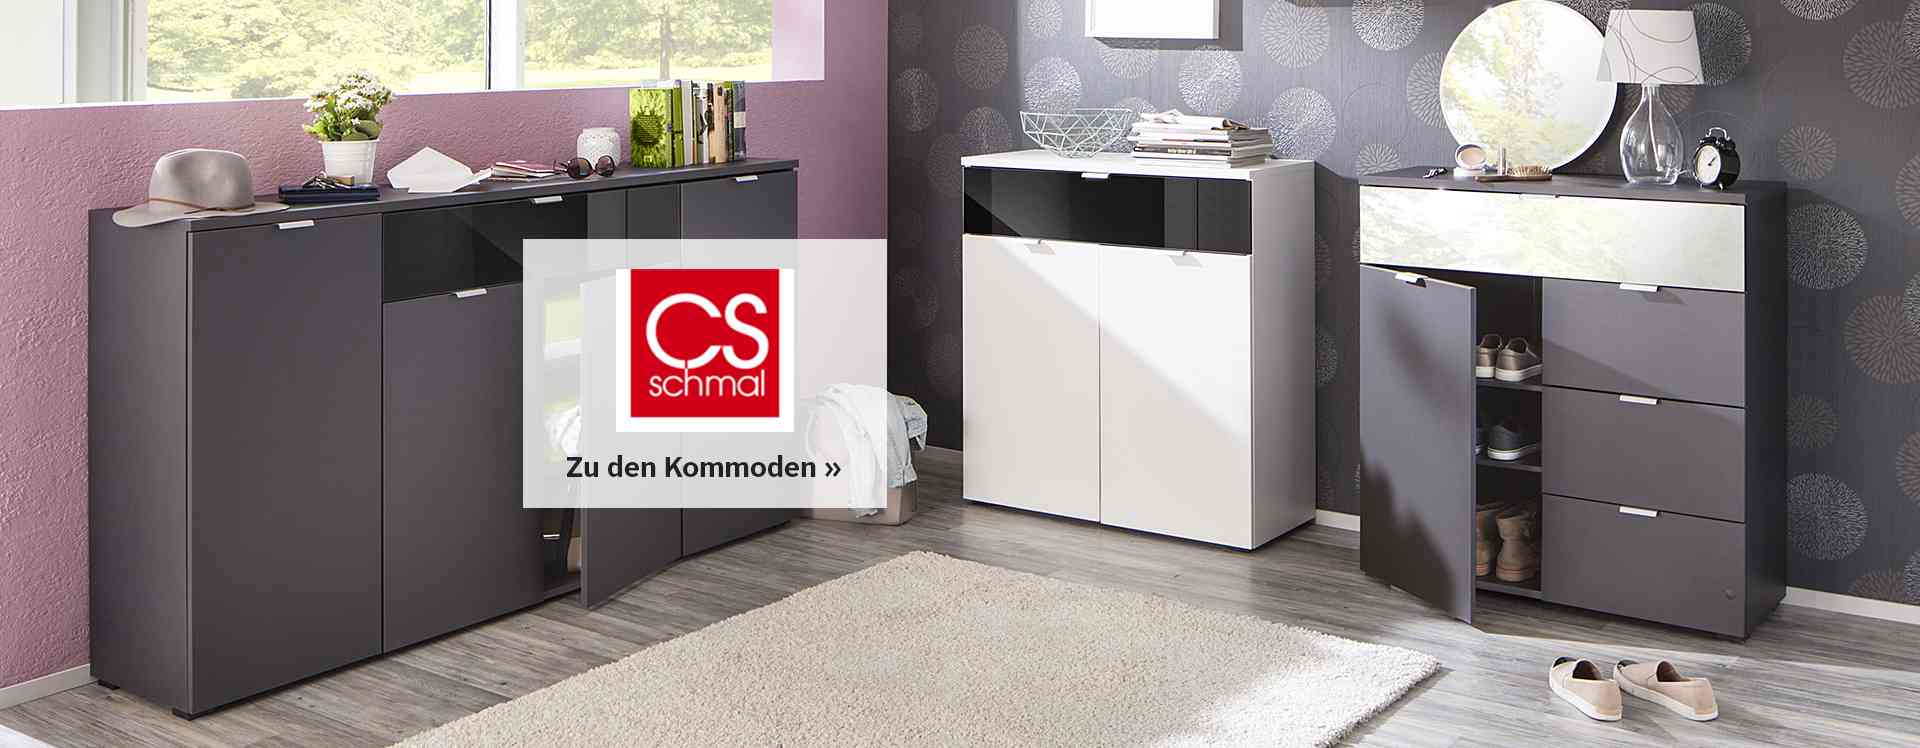 cs schmal m bel online kaufen otto. Black Bedroom Furniture Sets. Home Design Ideas